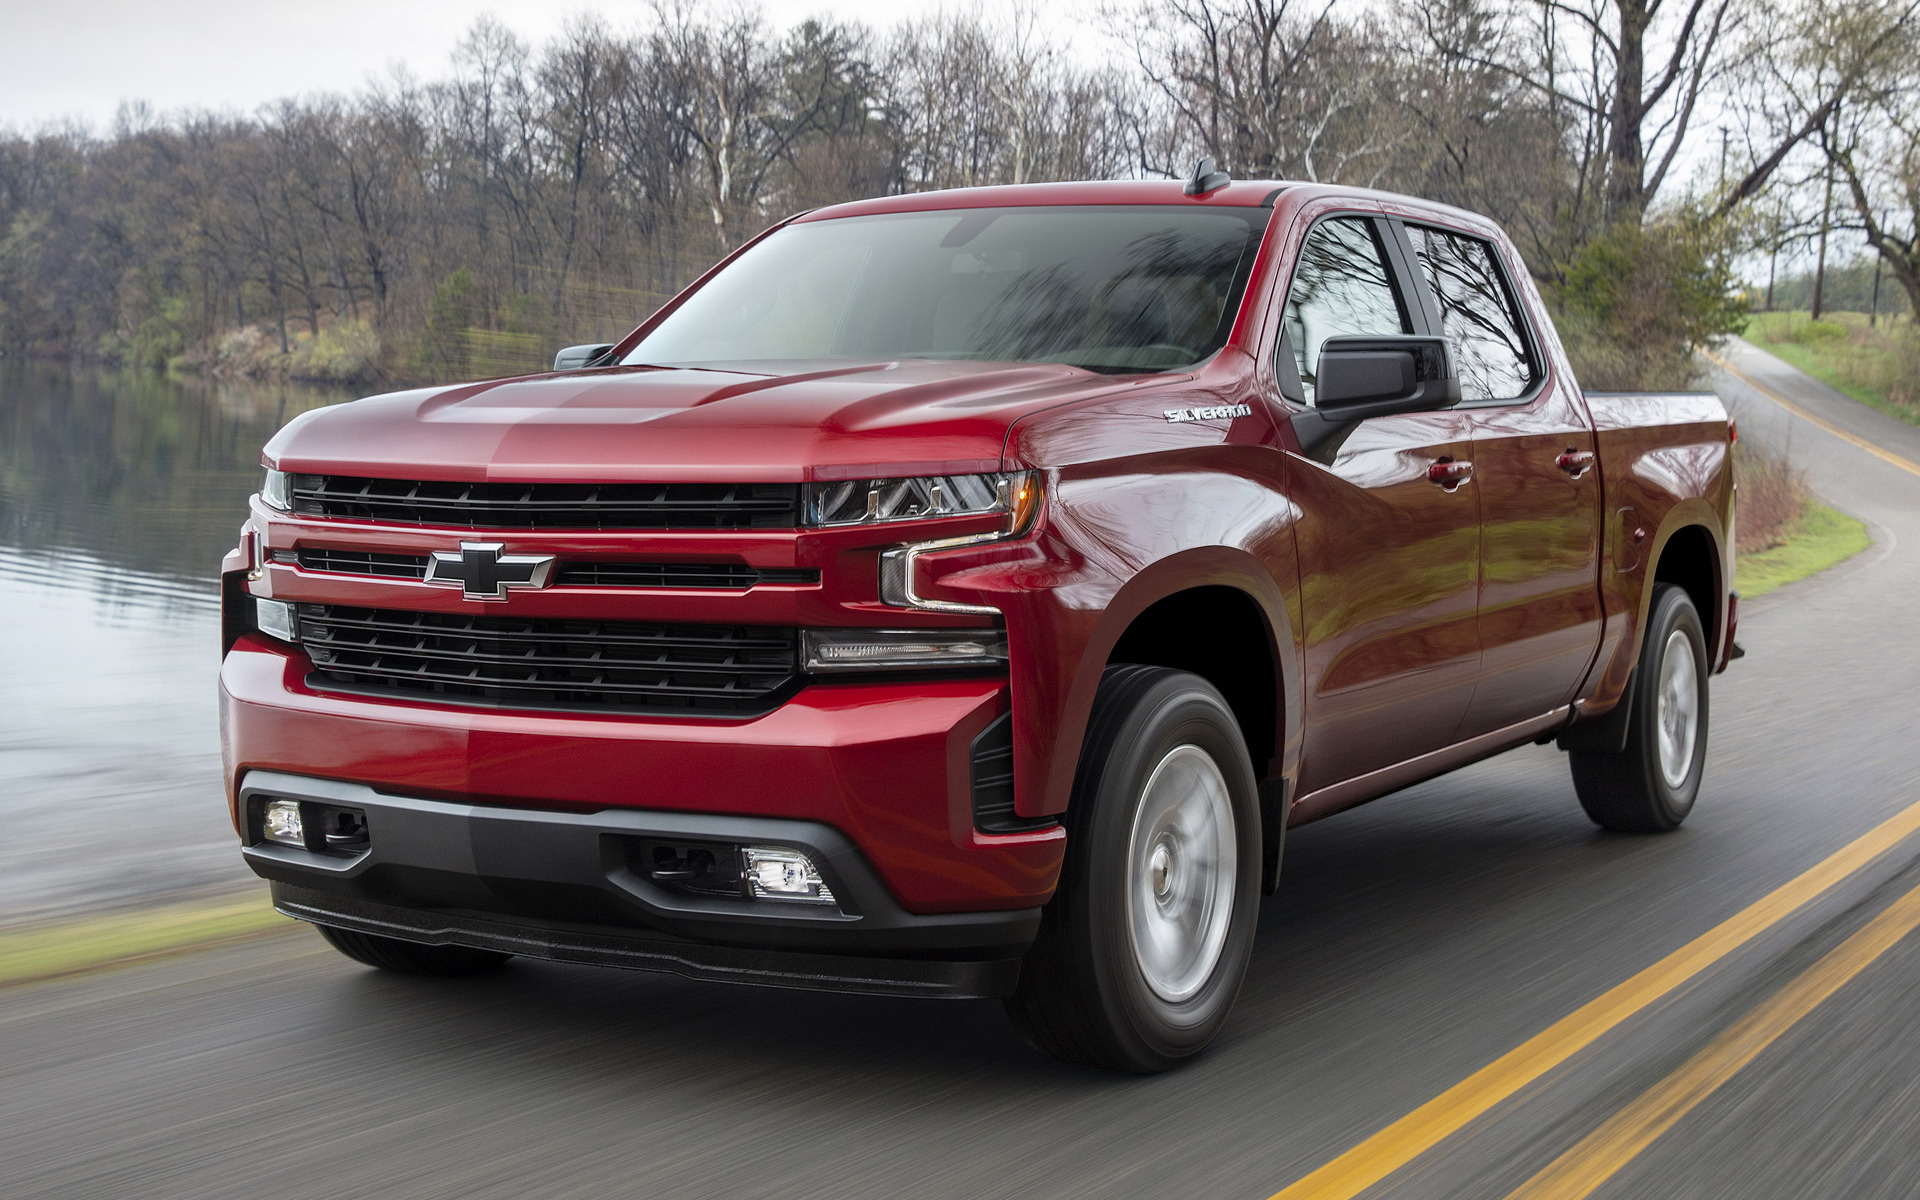 2019 Chevrolet Silverado RST Crew Cab - Wallpapers and HD Images | Car Pixel